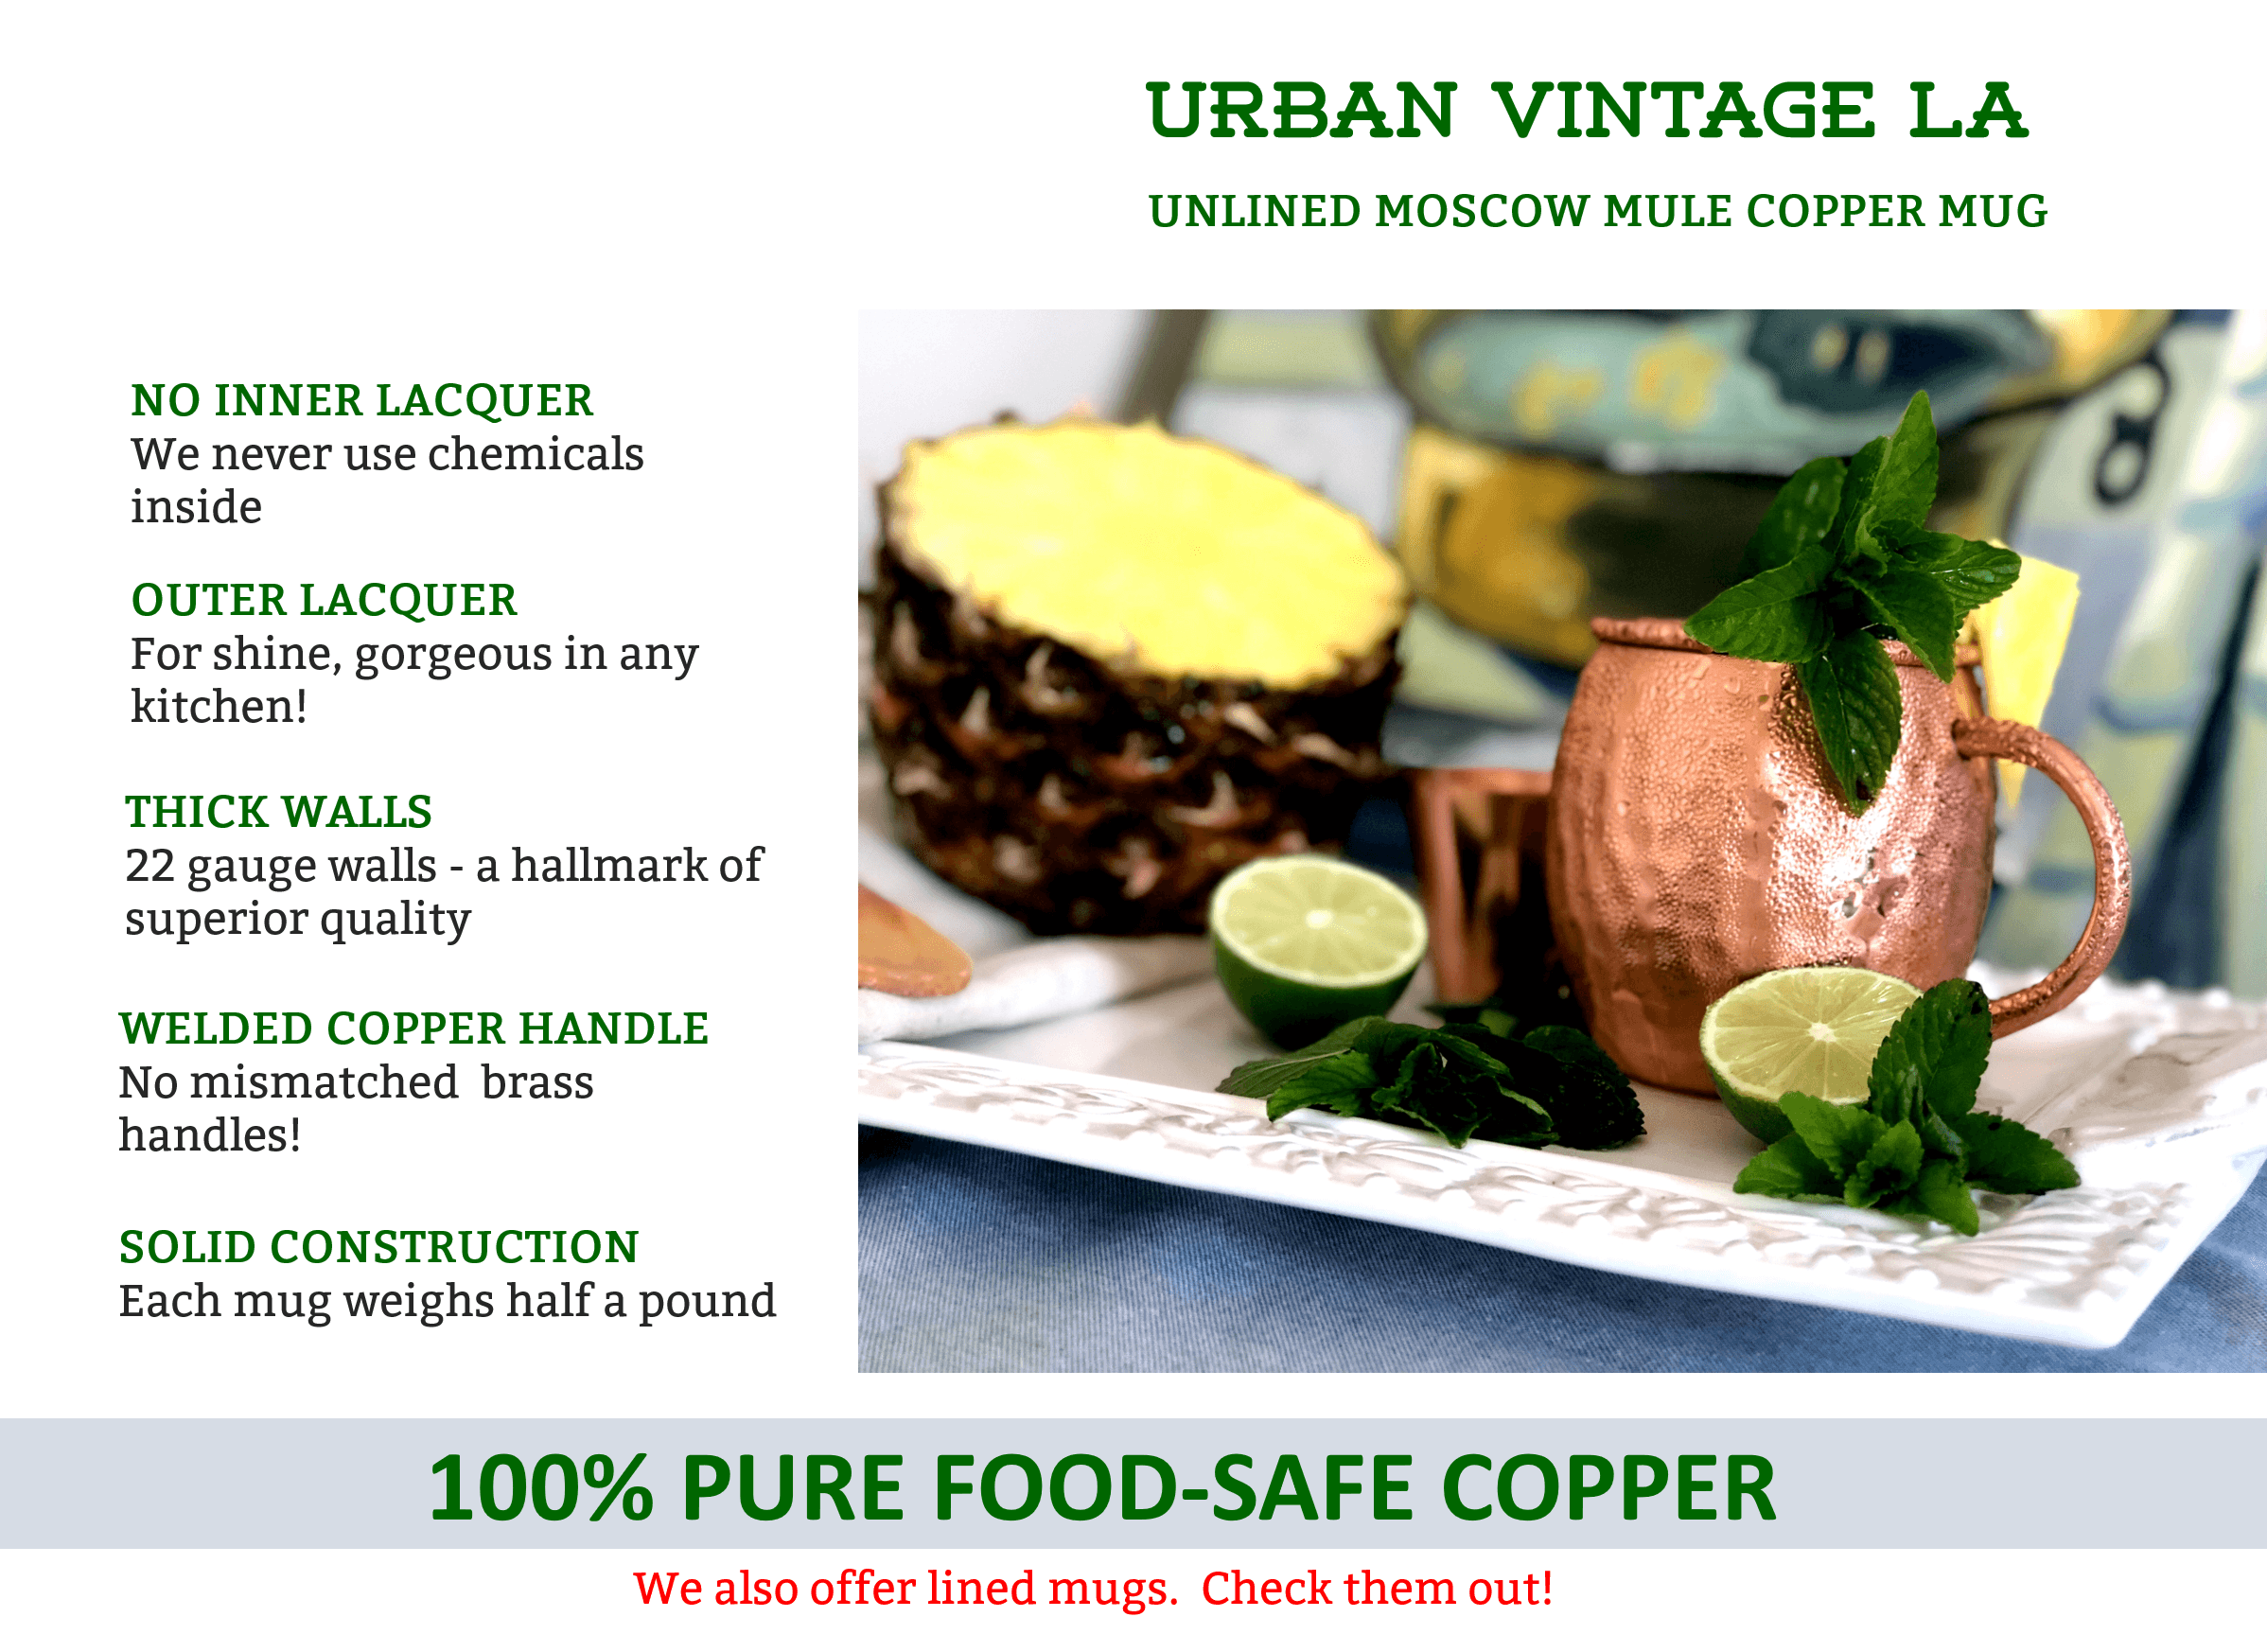 Pure Copper Moscow Mule Mugs by Urban Vintage LA on White Tray with Pinneaple Mule Ingredients